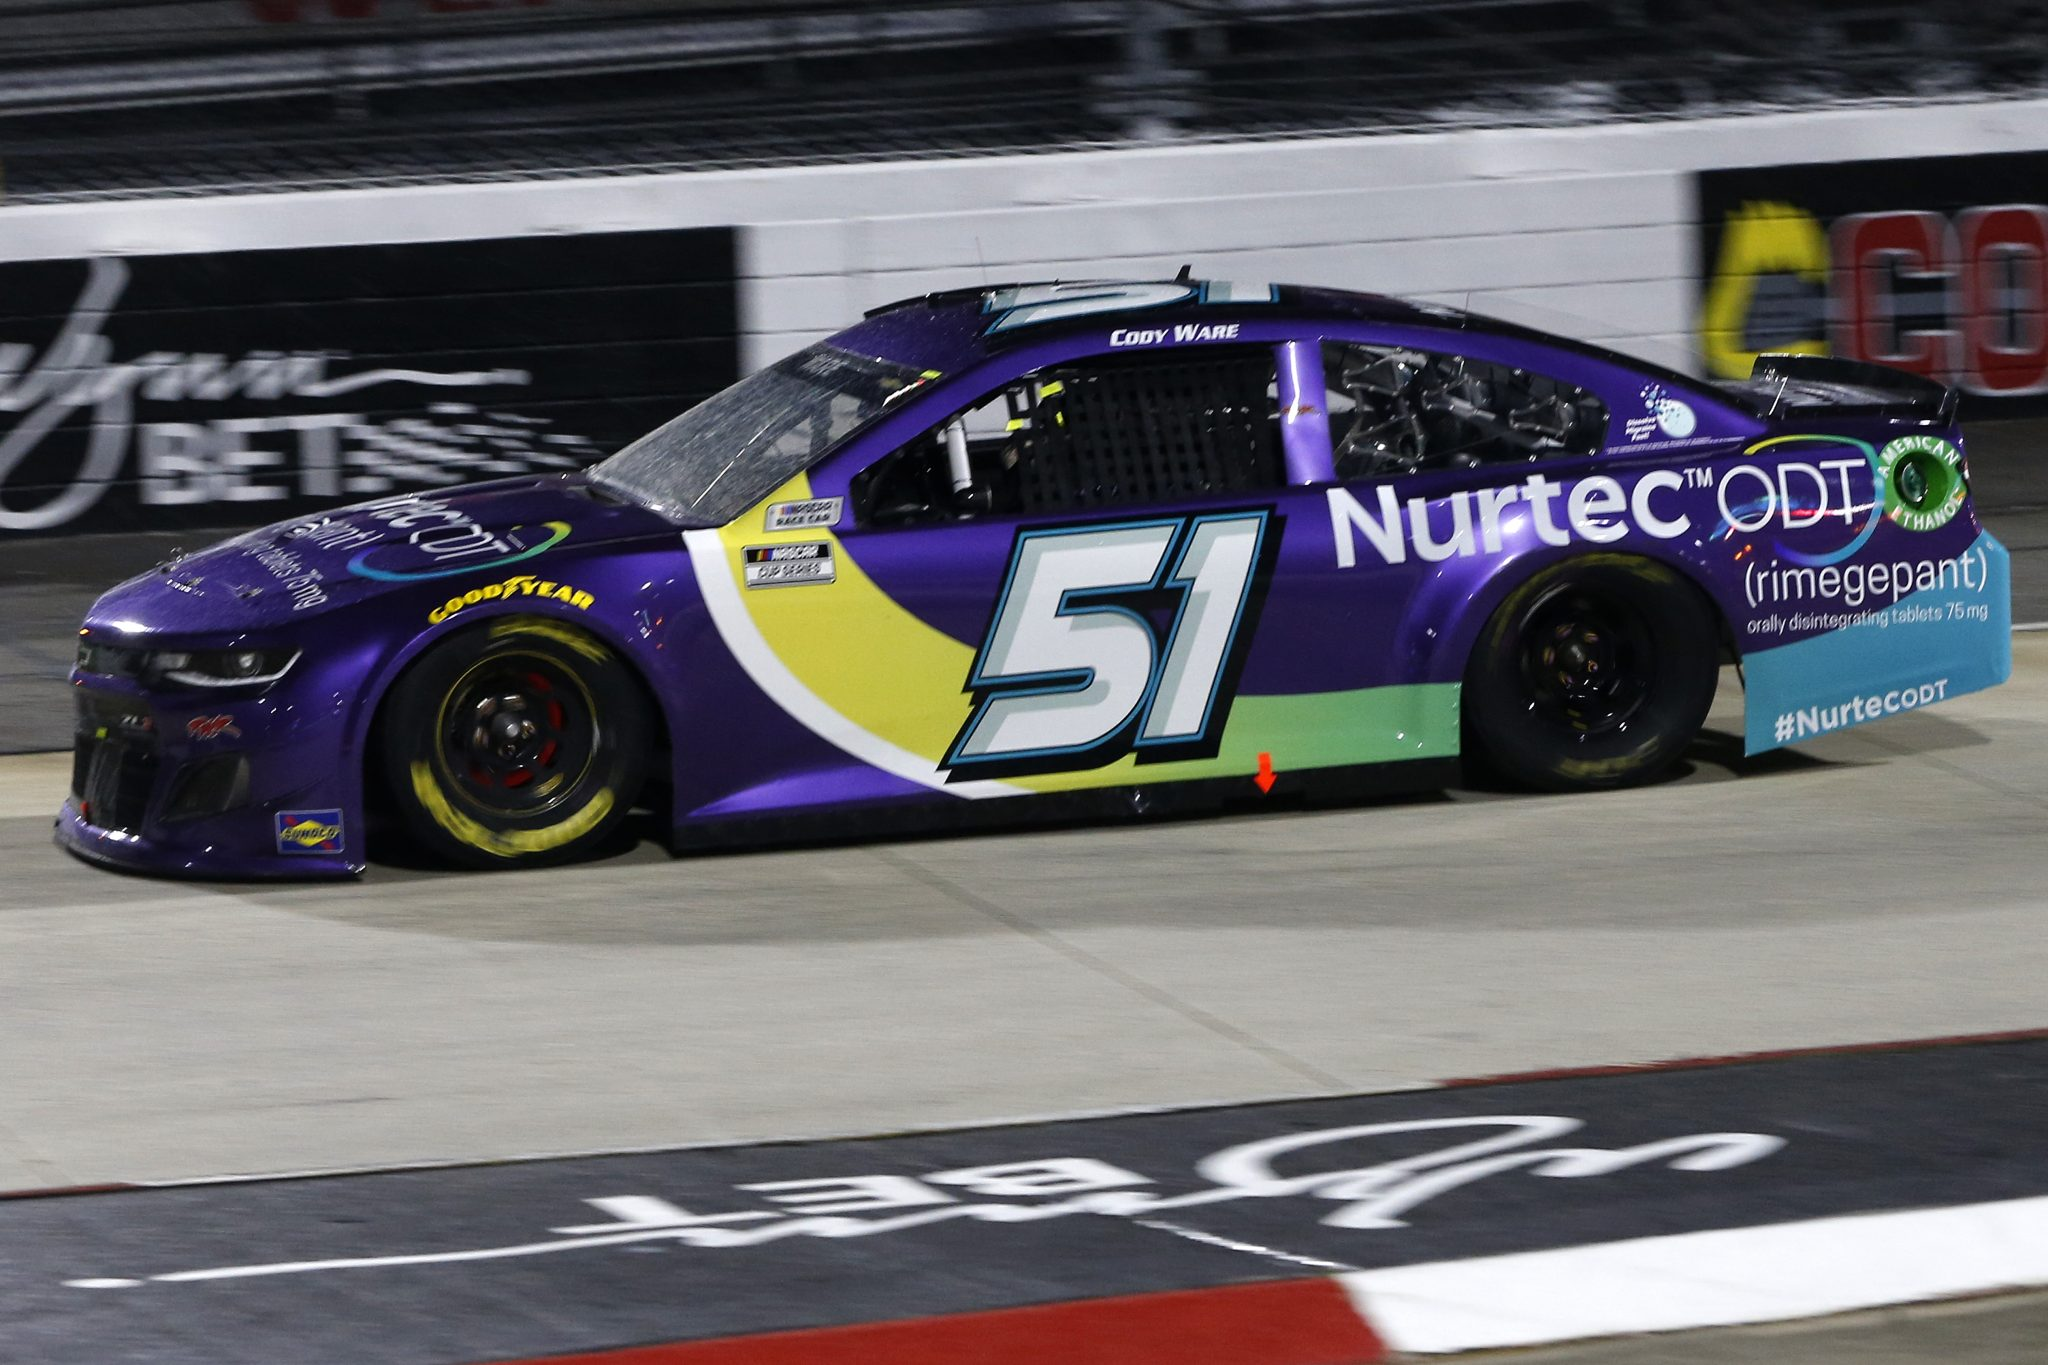 MARTINSVILLE, VIRGINIA - APRIL 10: Cody Ware, driver of the #51 Nurtec ODT Chevrolet, drives during the NASCAR Cup Series Blue-Emu Maximum Pain Relief 500 at Martinsville Speedway on April 10, 2021 in Martinsville, Virginia. (Photo by Brian Lawdermilk/Getty Images) | Getty Images